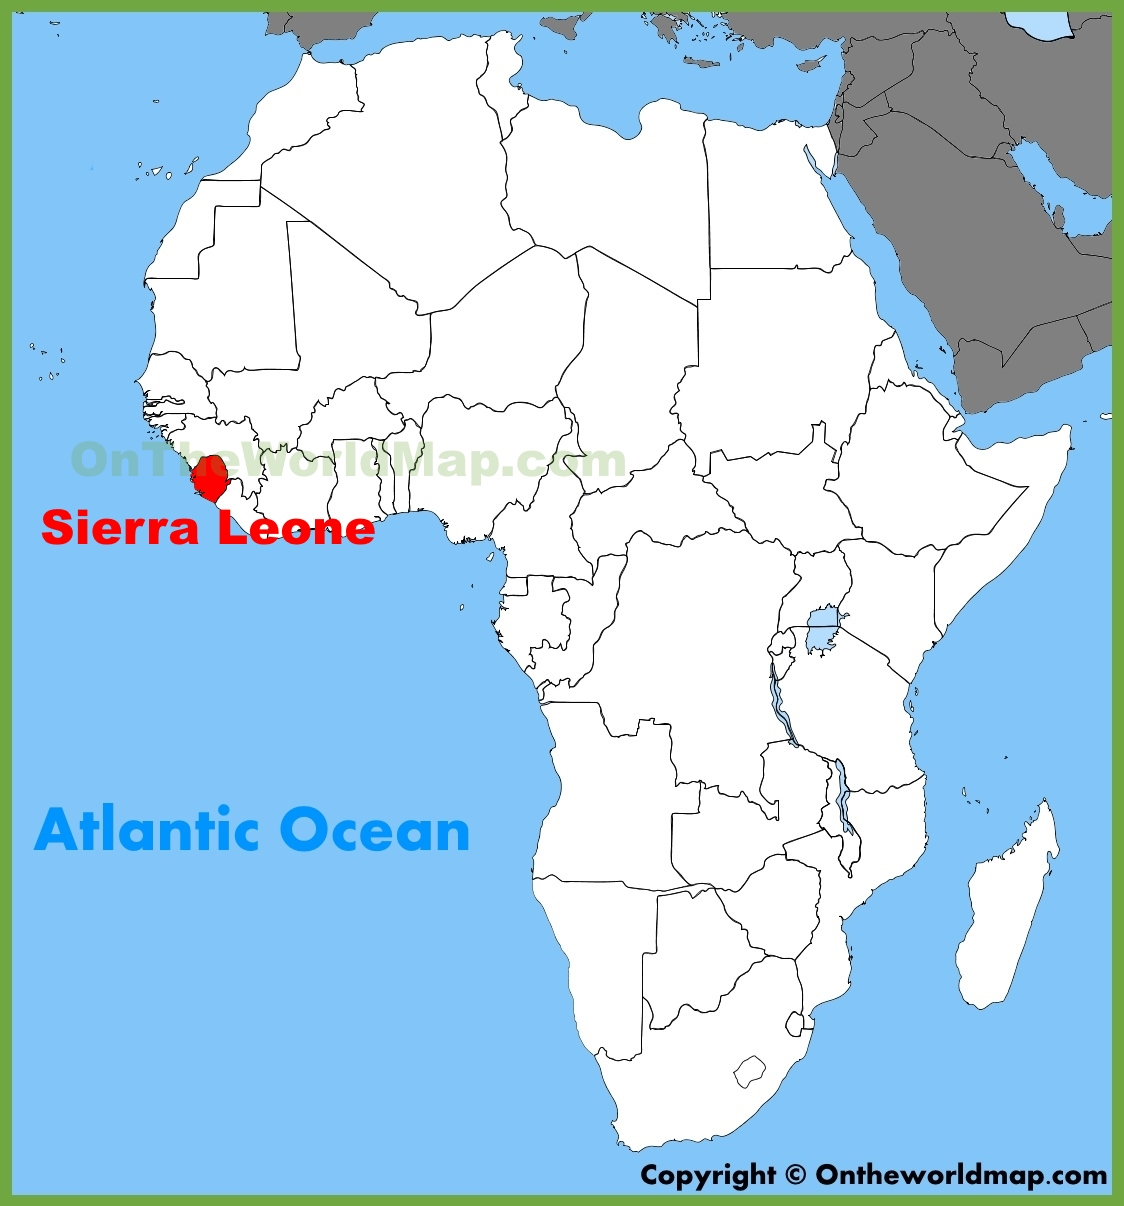 Map Of Africa Sierra Leone Sierra Leone location on the Africa map